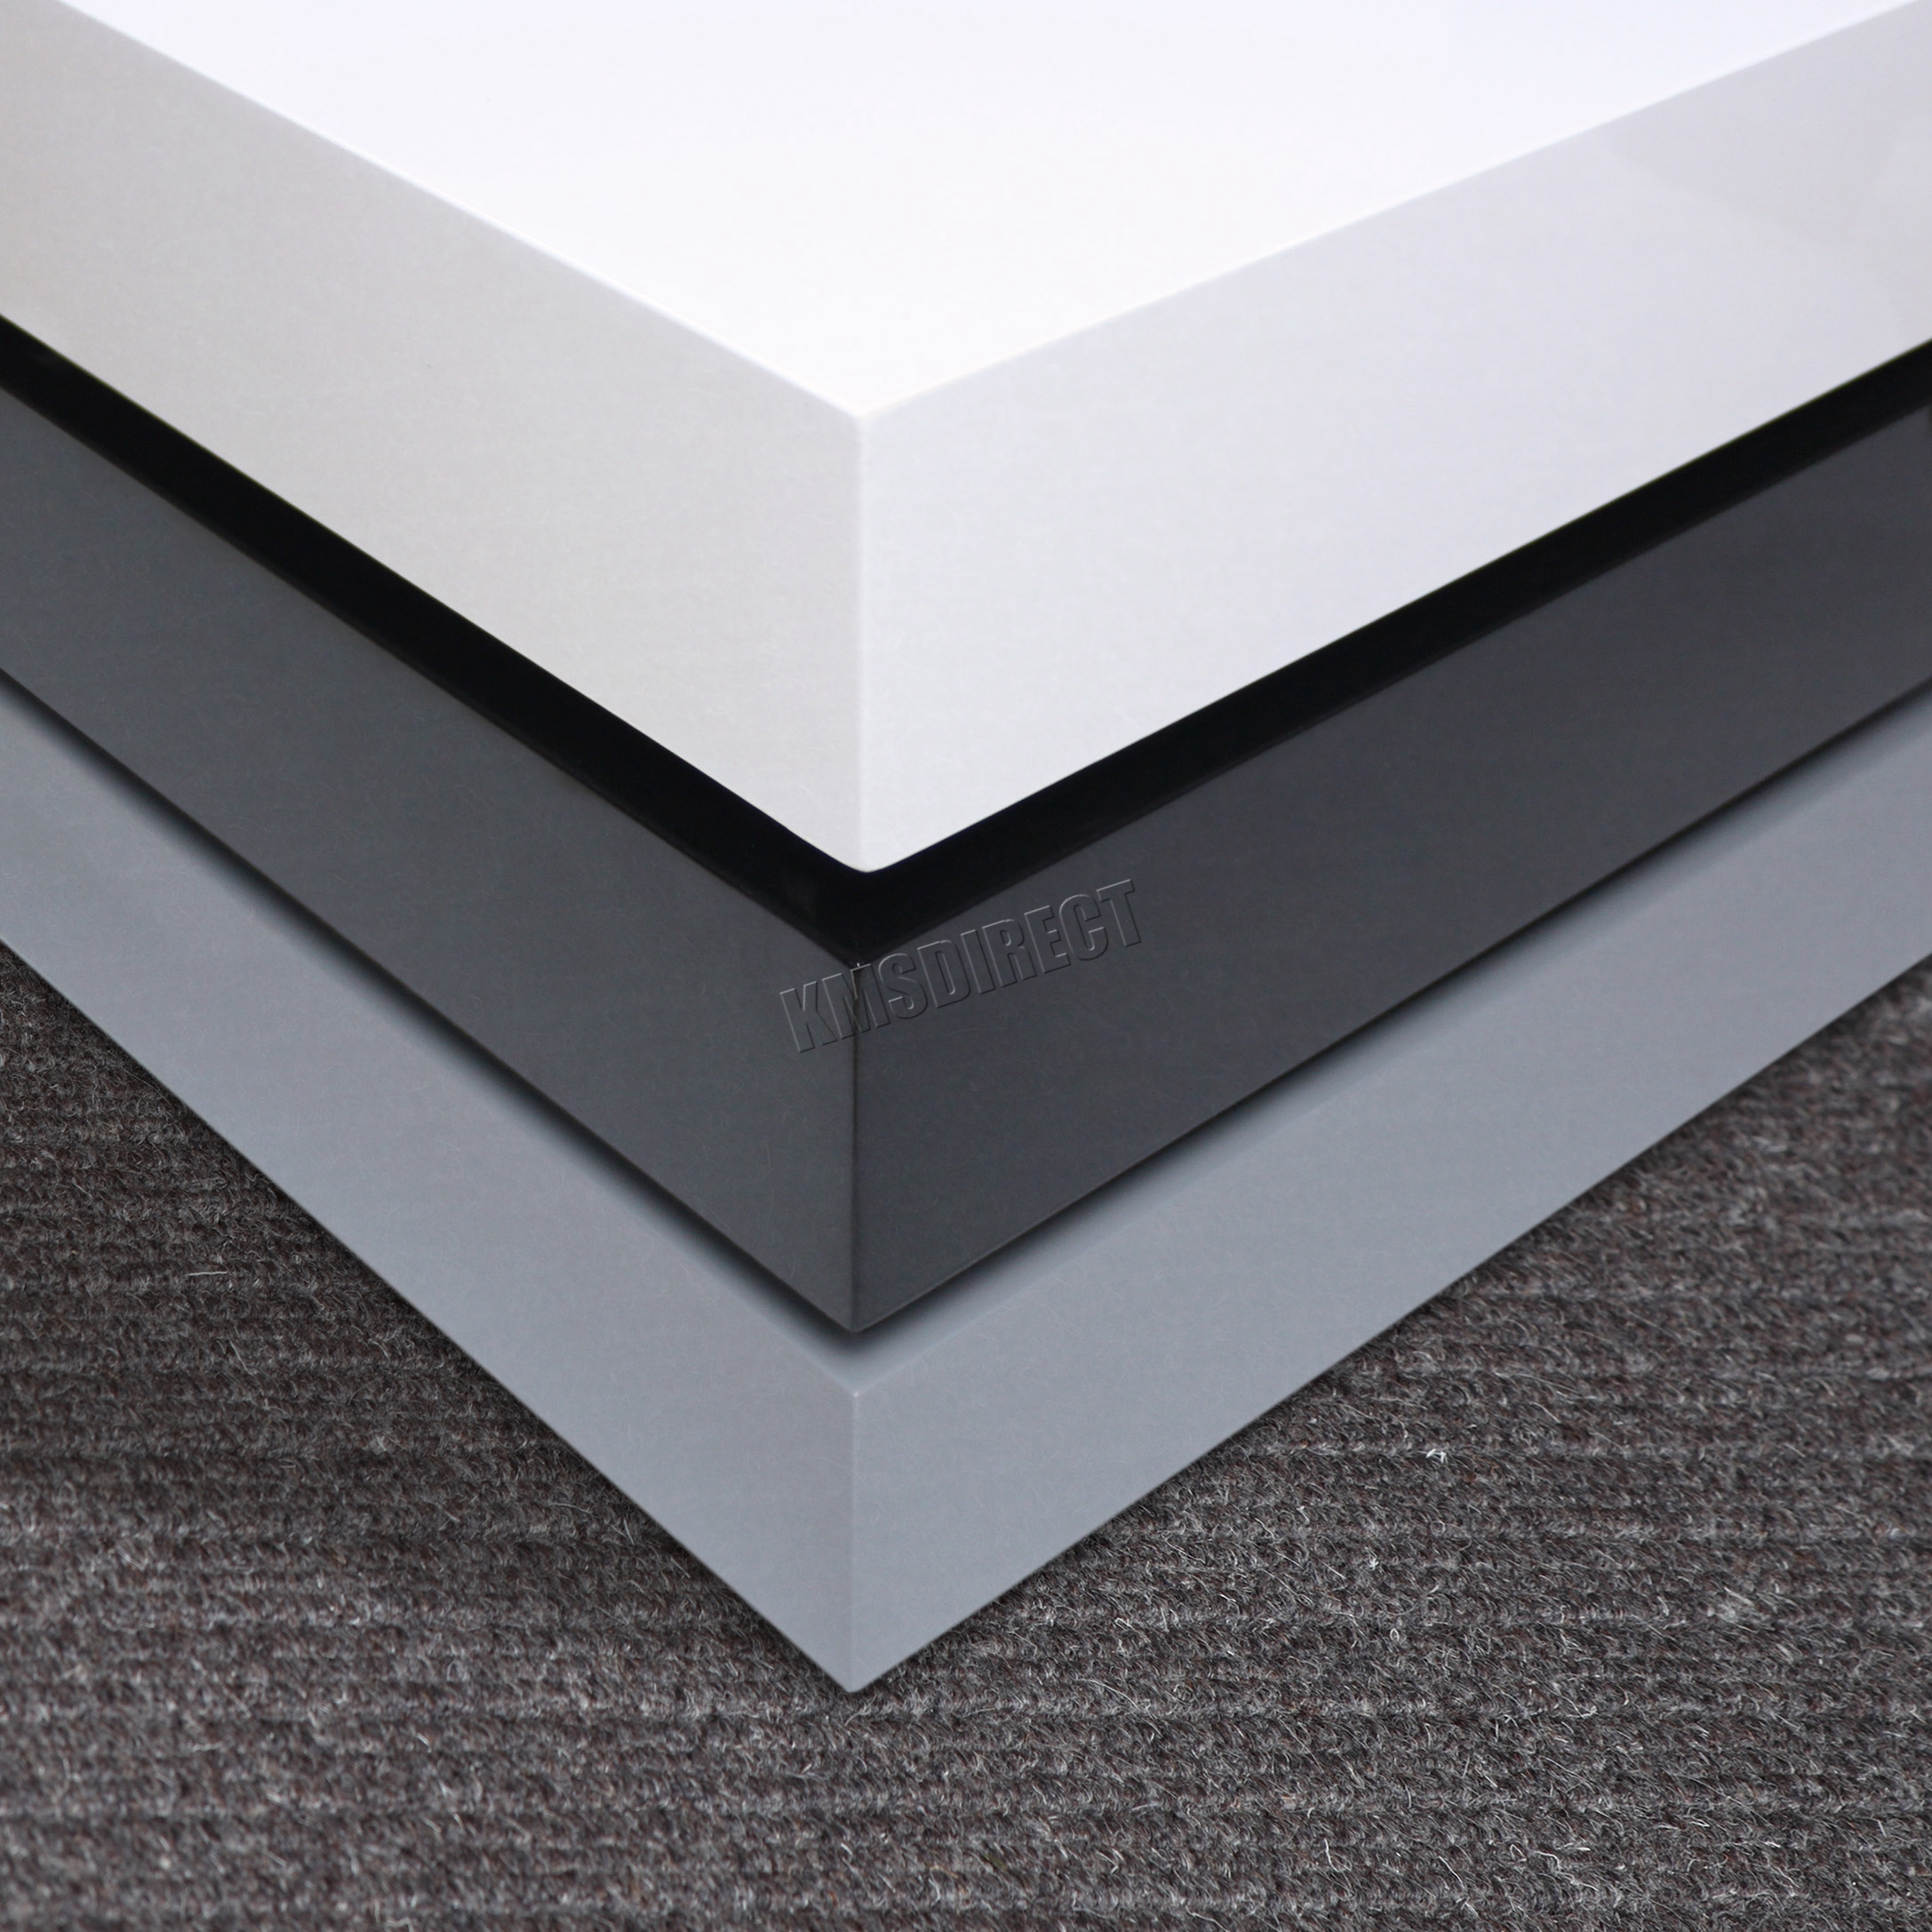 Coffee Table 3 Layers White High Gloss: FoxHunter Coffee Table 3 Layers Square High Gloss MDF CT03